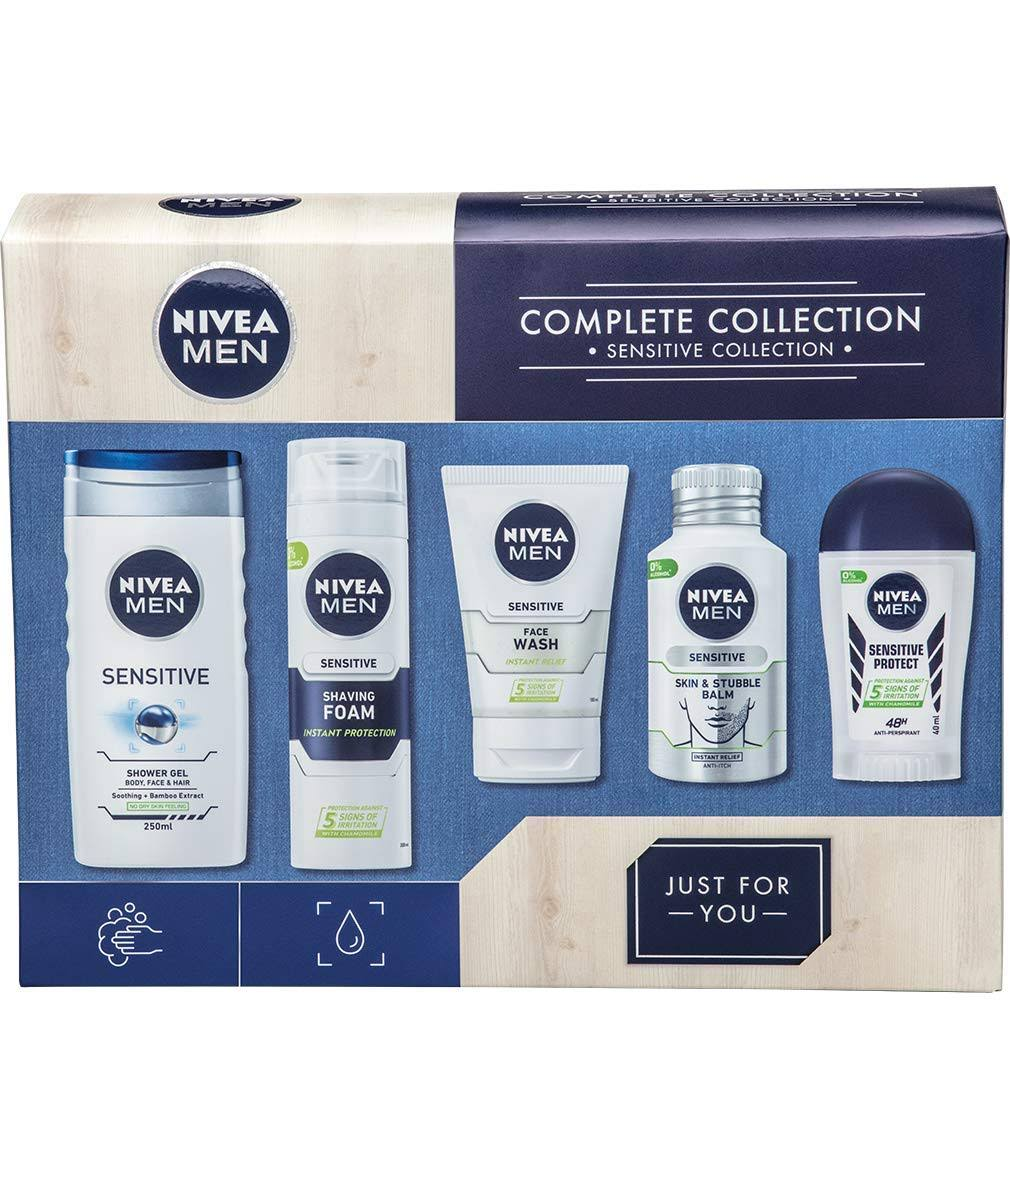 Nivea Men Complete Sensitive Collection Set